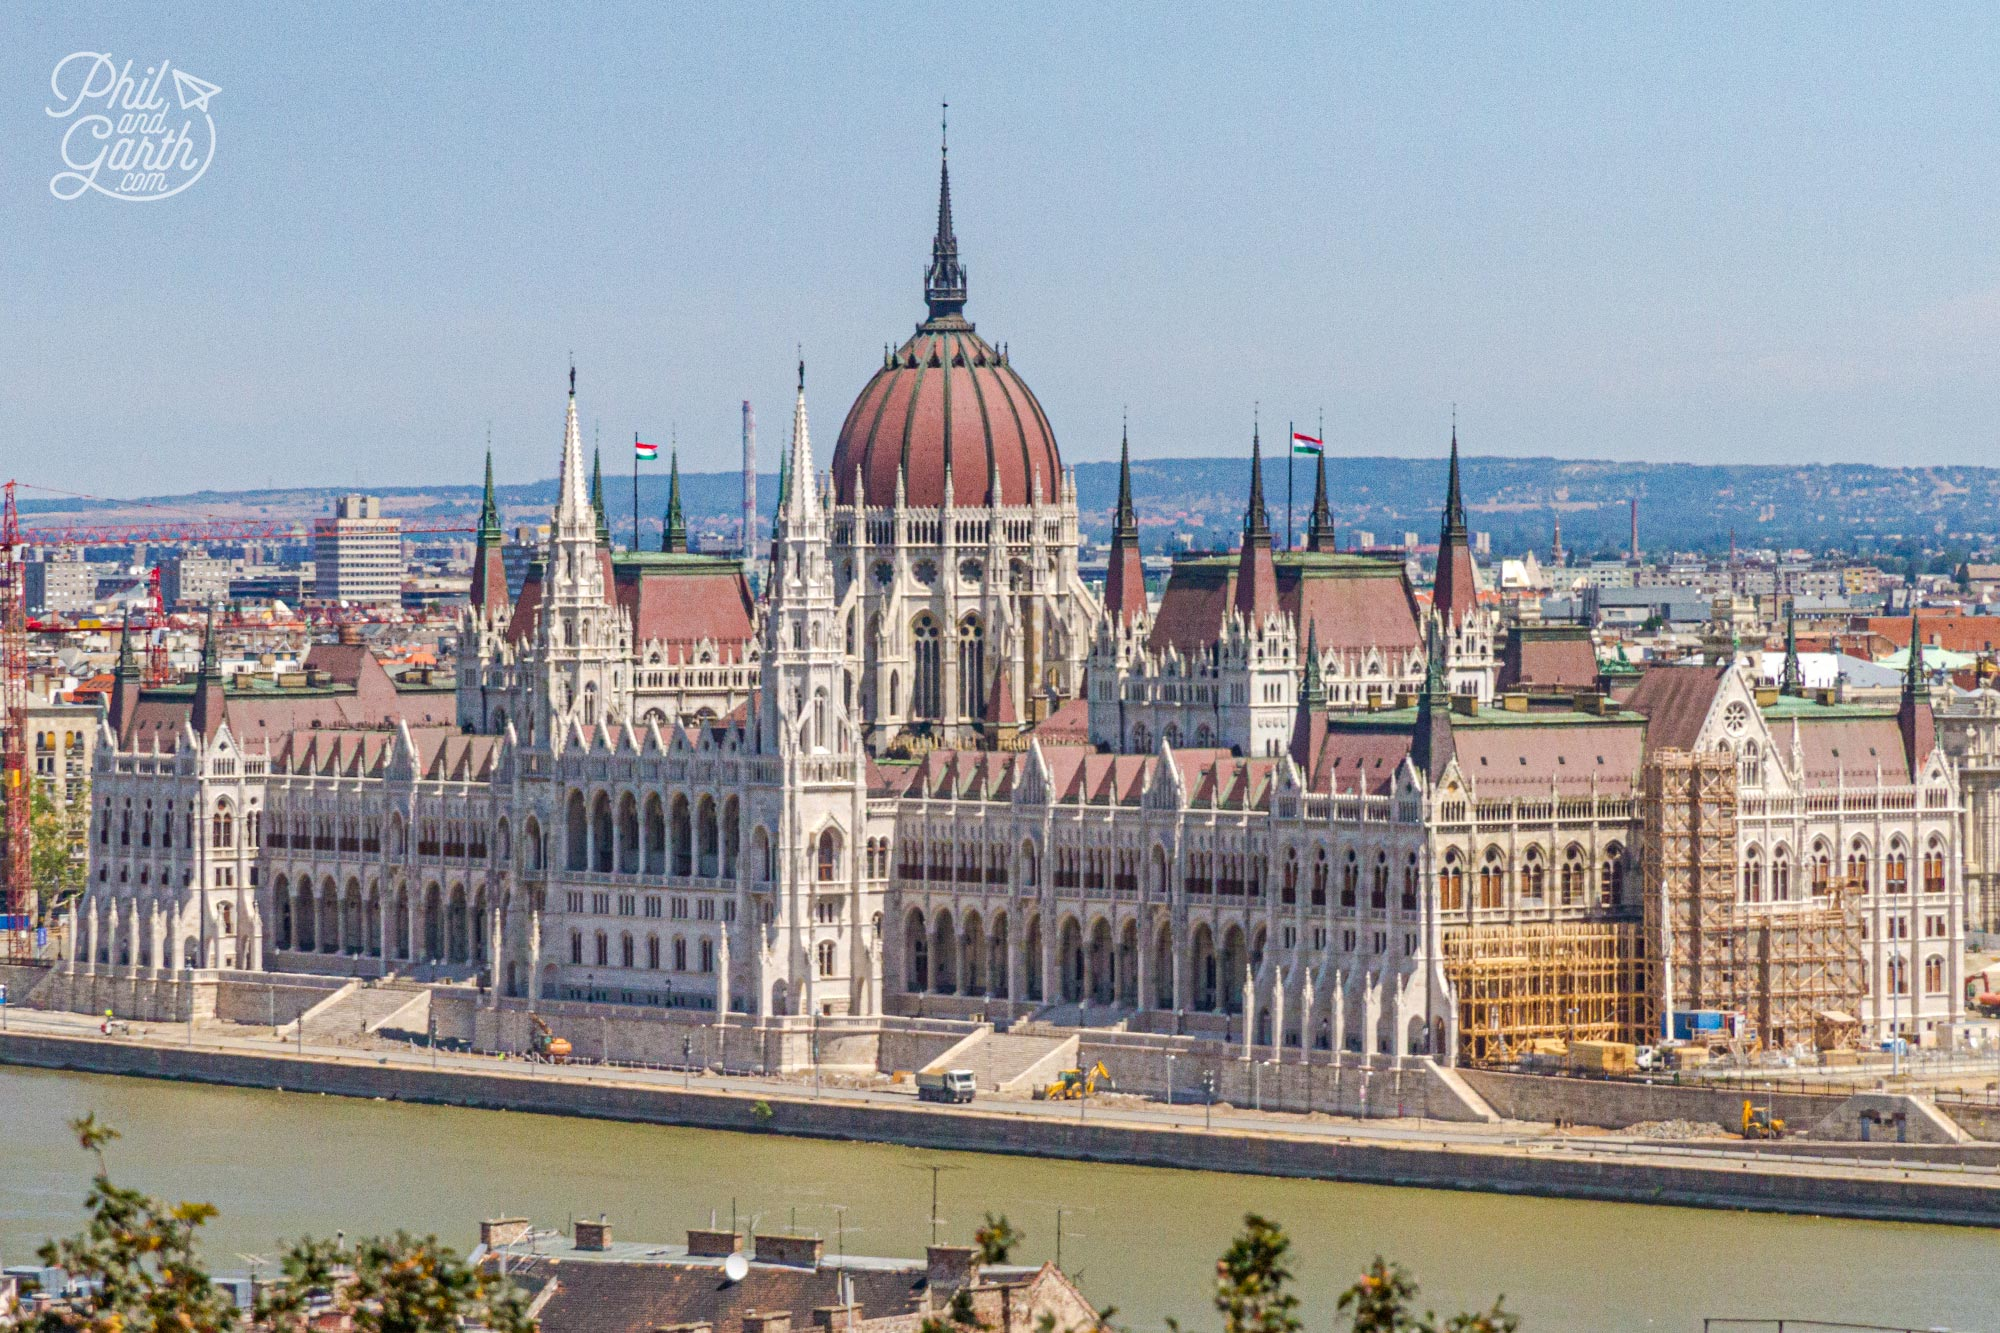 The monumental Hungarian Parliament Building - the 3rd largest parliament building in the world